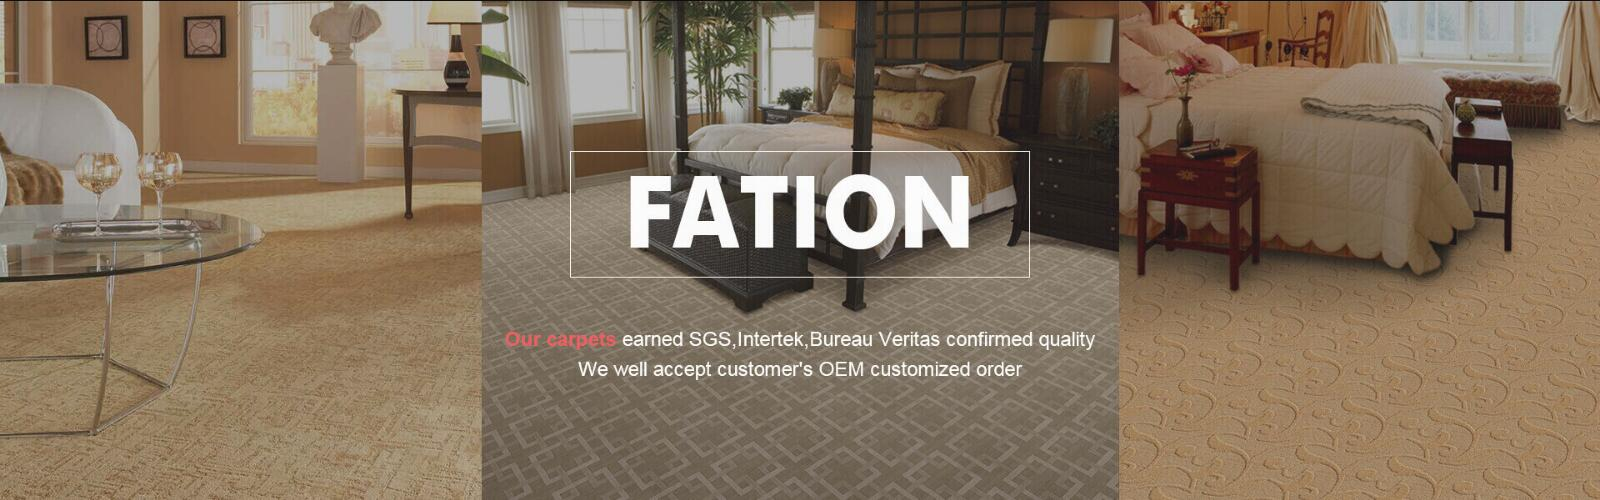 shag rugs, flooring, carpets, carpet